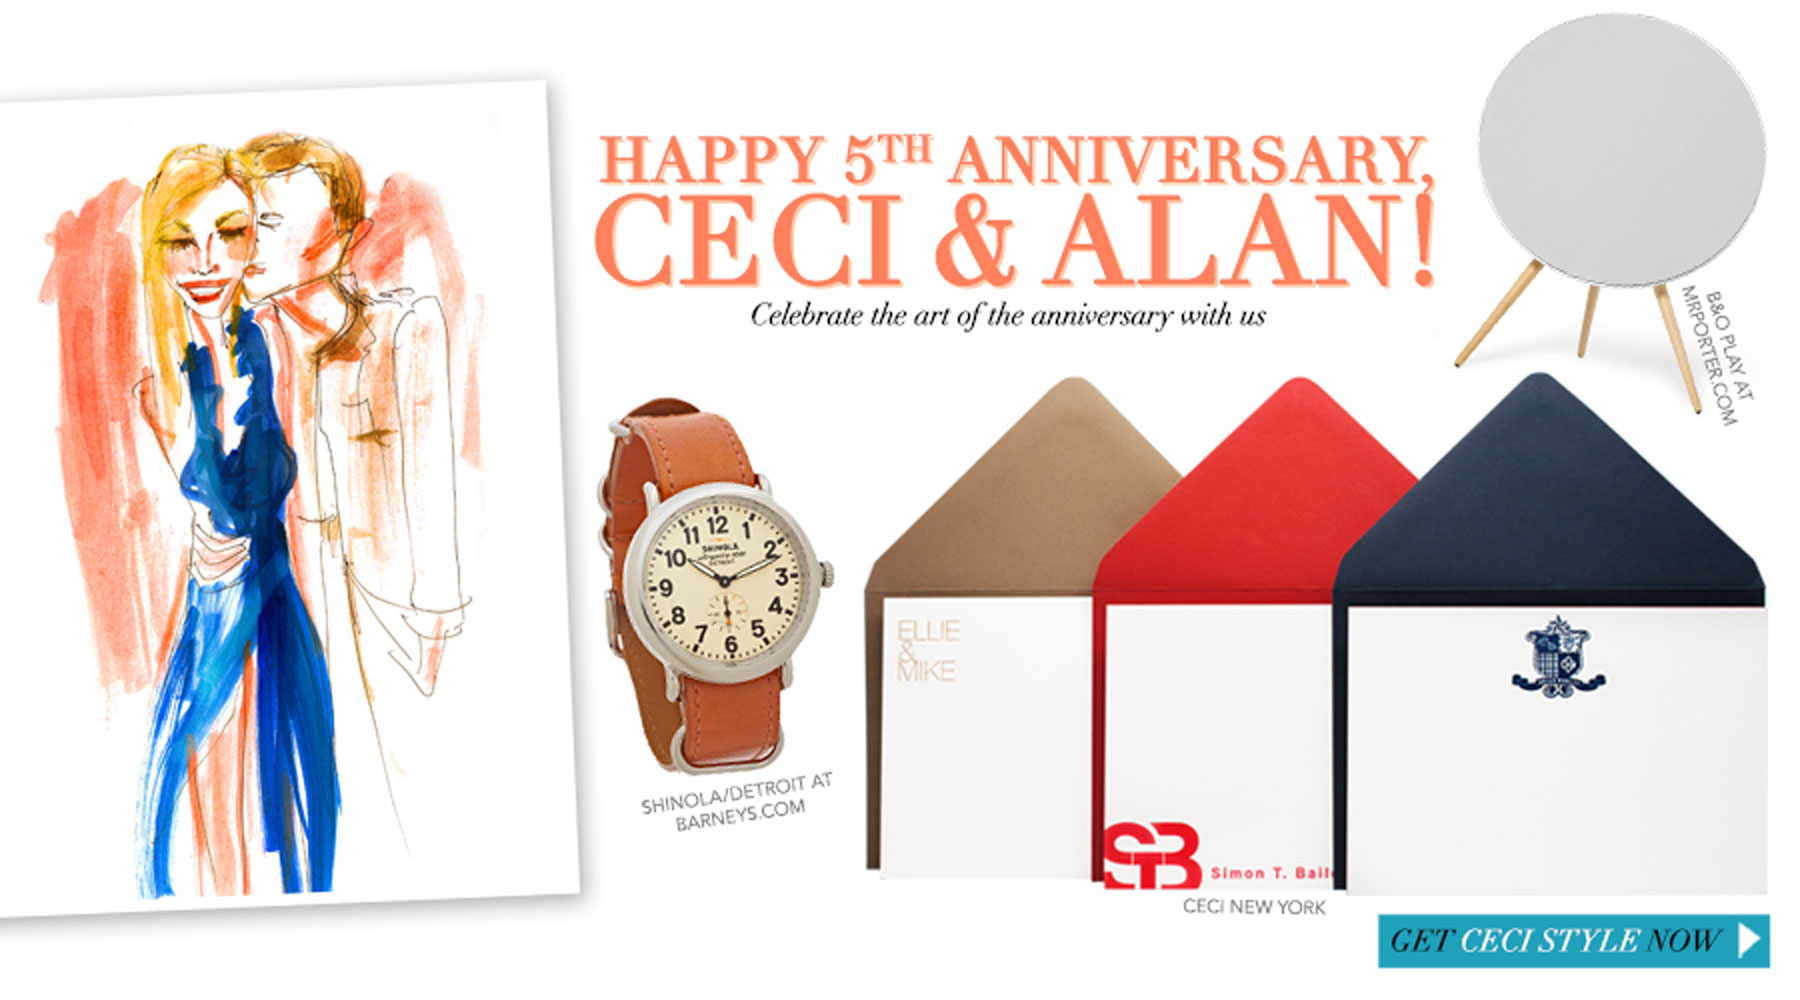 Happy 5th Anniversary, Ceci & Alan! - Celebrate the art of the anniversary with us